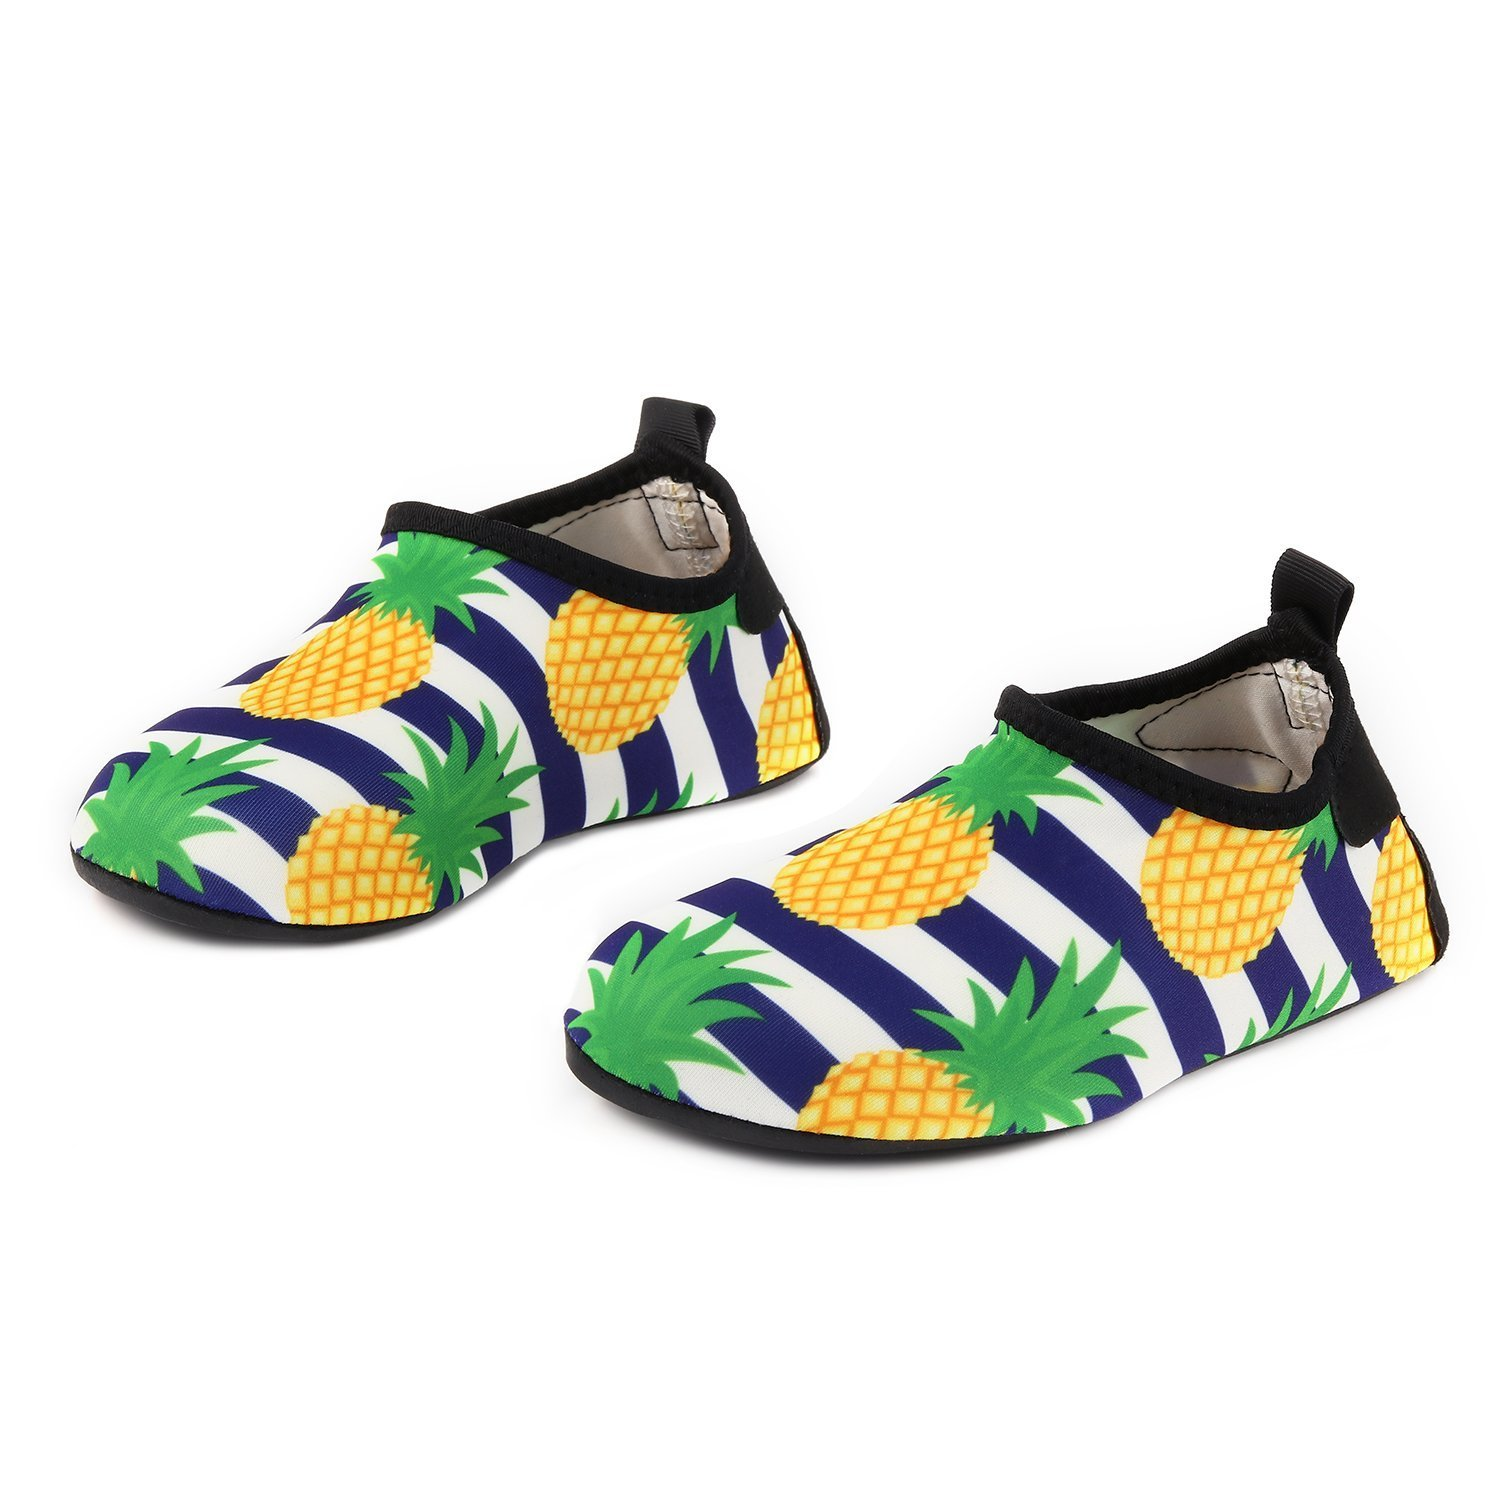 Adorllya Water Shoes Aqua Socks Water Socks Swim Shoes for Kids Toddlers Boys Girls,Stripe-pineapple,11.5-12.5 Little kid, Asian  (Size 28/29)